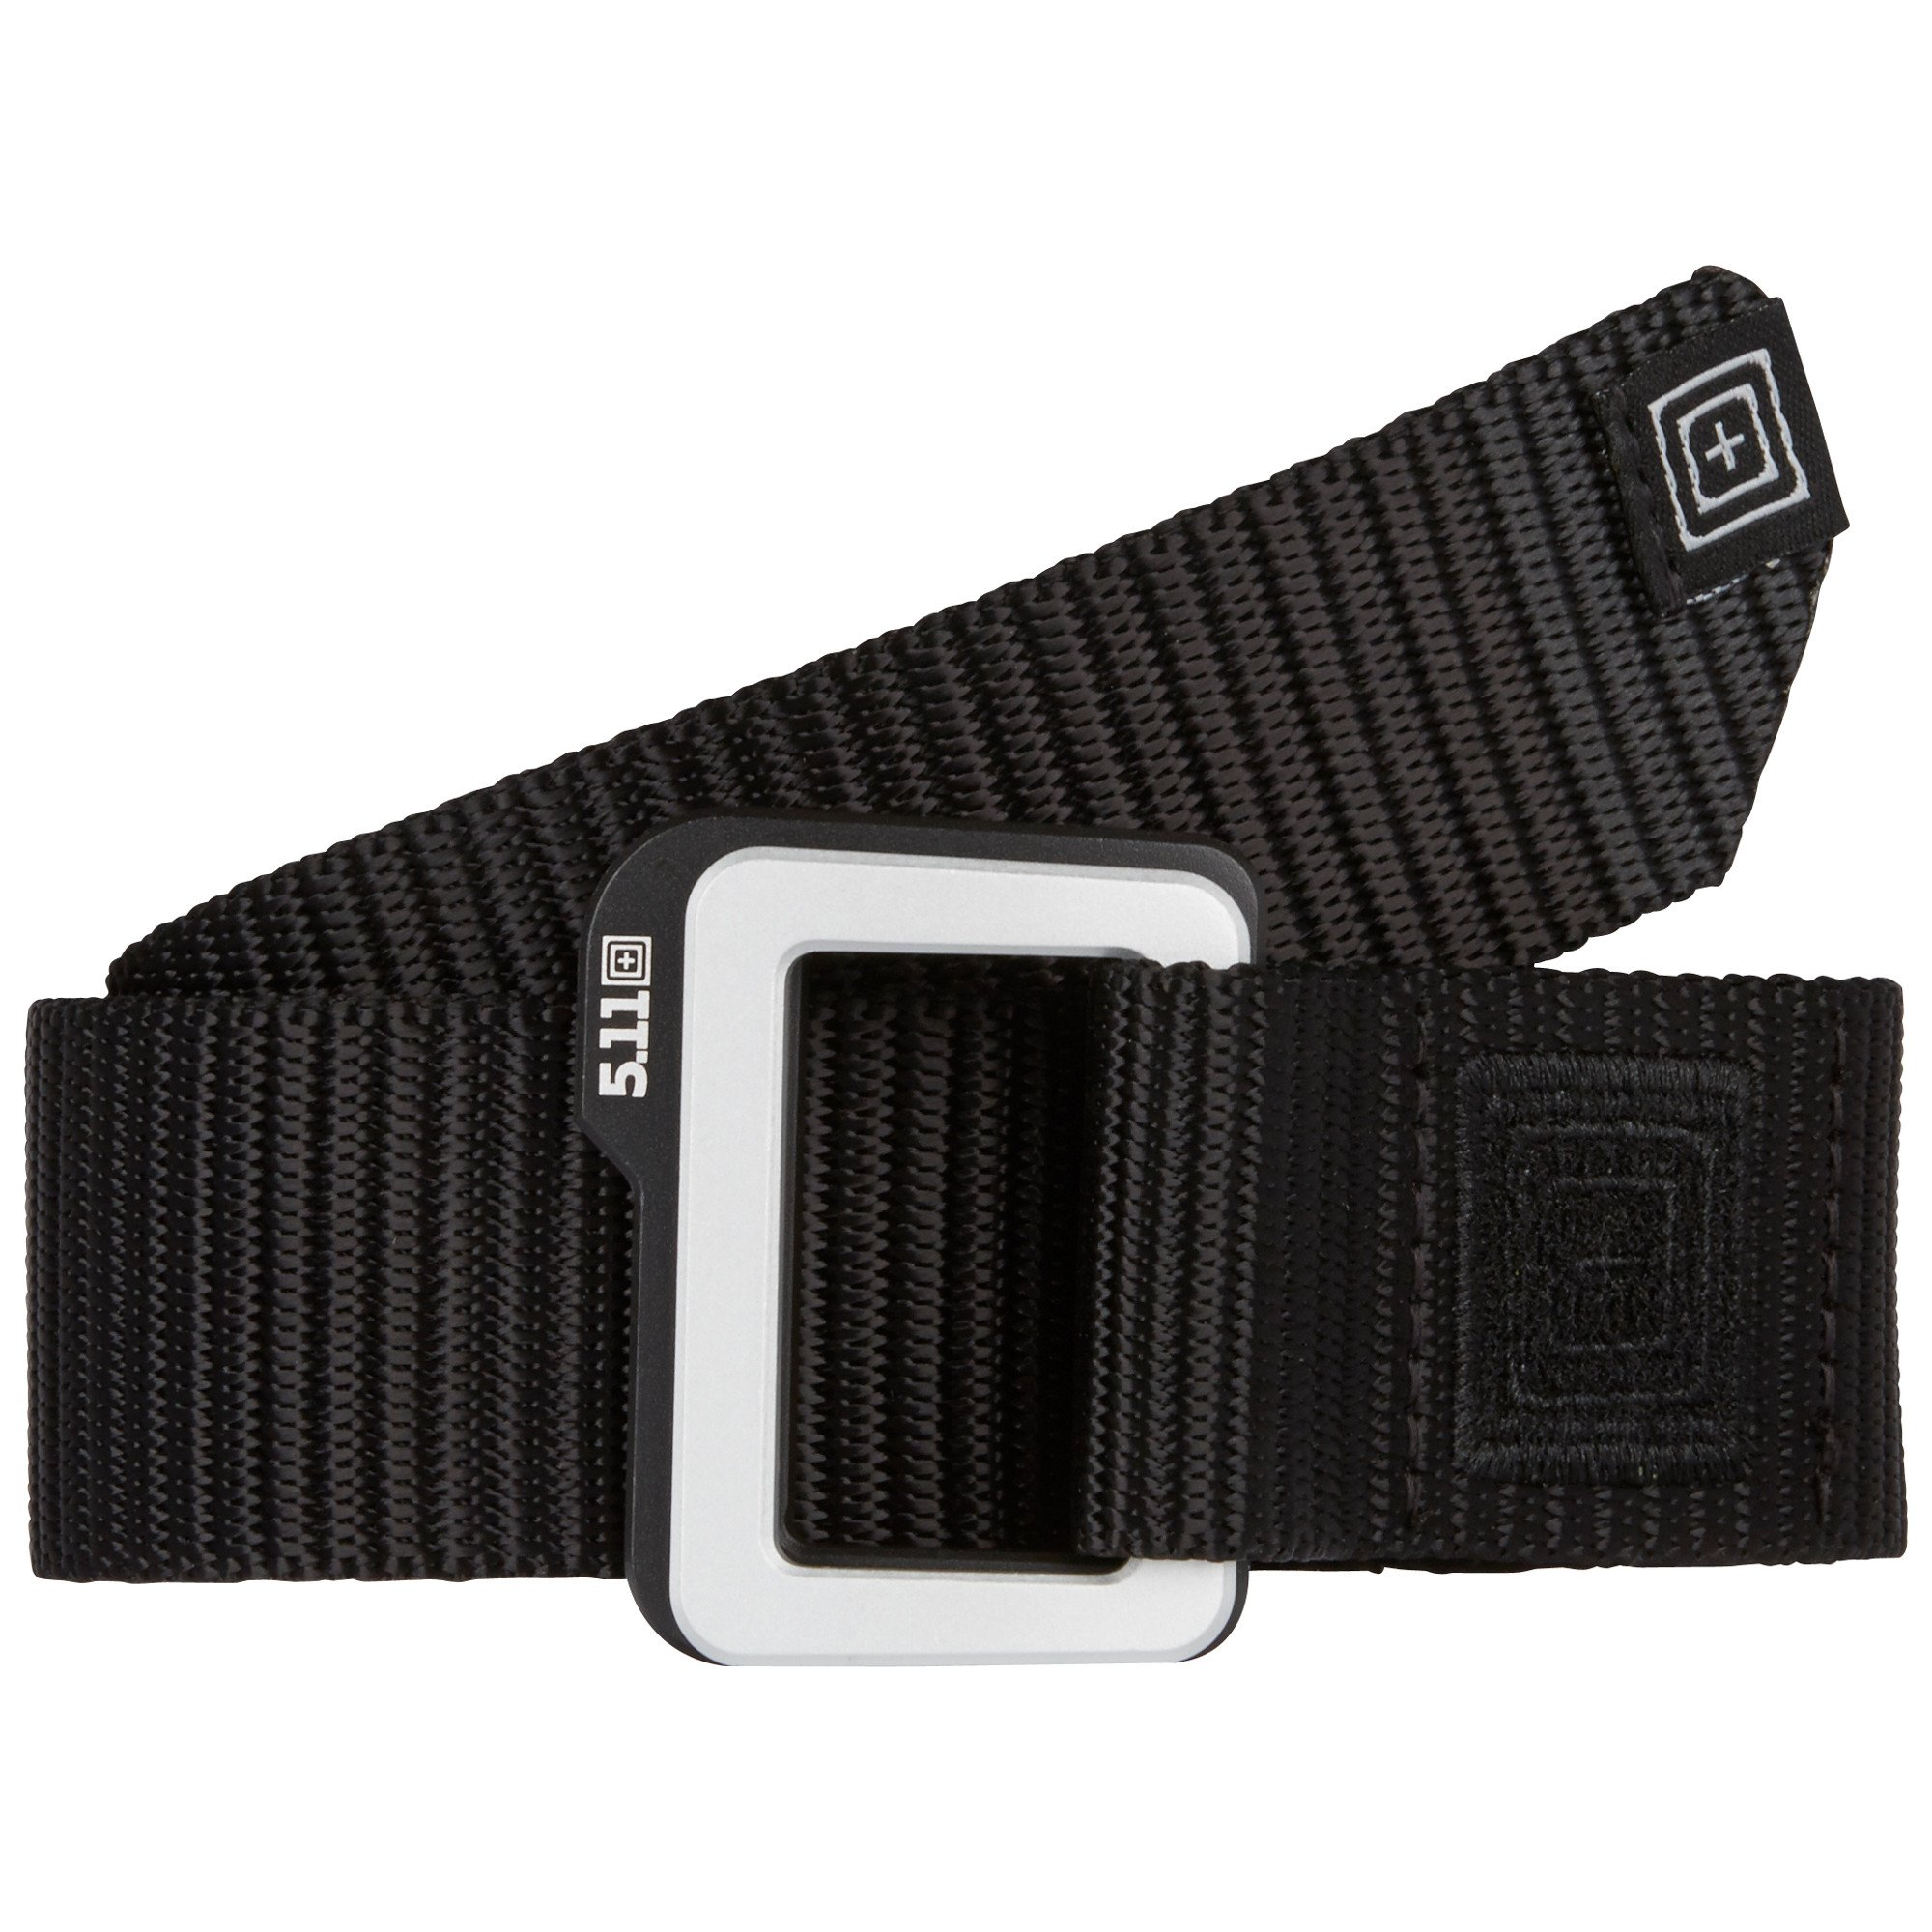 5.11 Tactical TRAVERSE™ DOUBLE BUCKLE BELT – Black